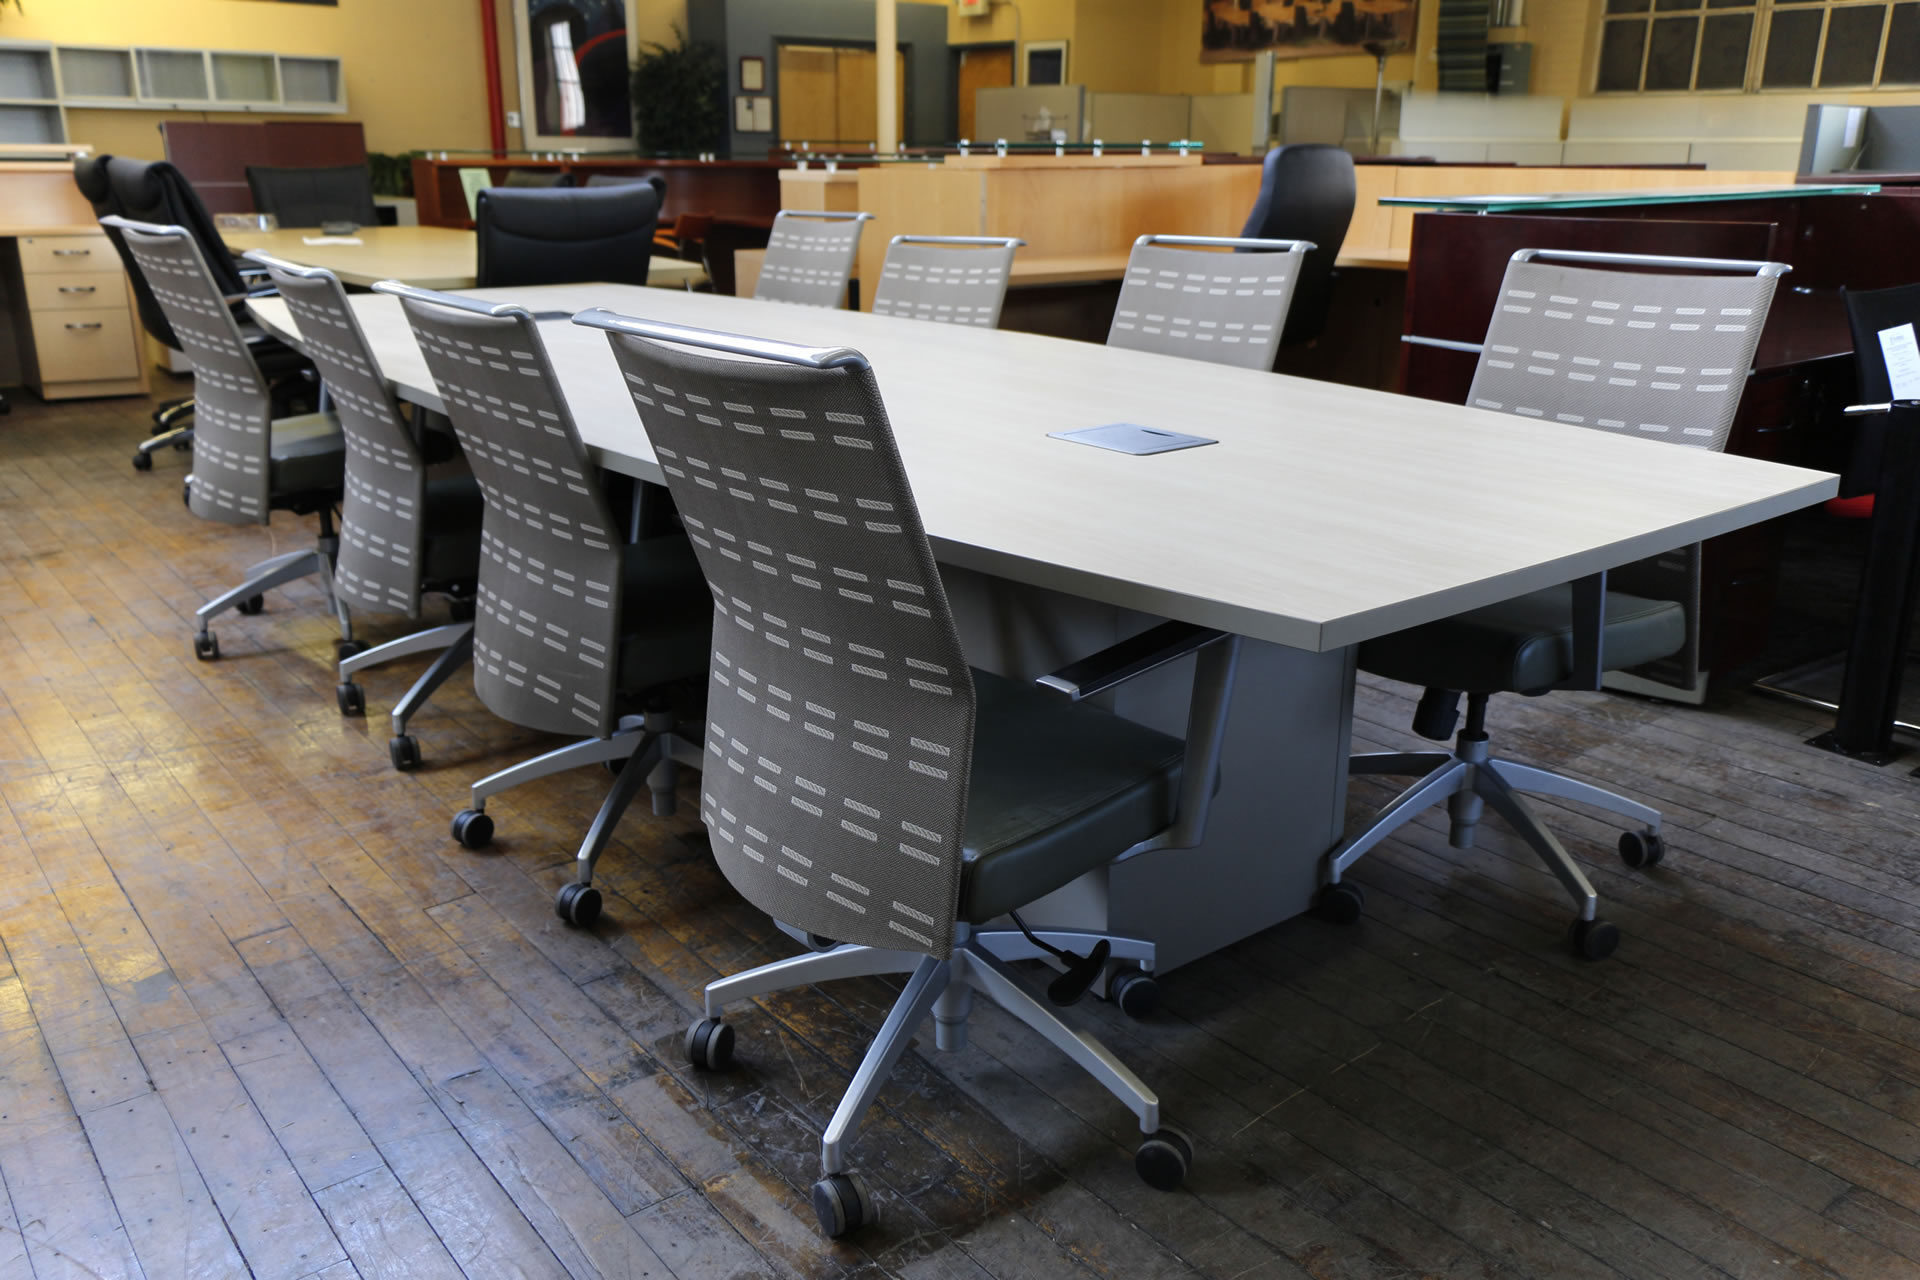 peartreeofficefurniture_peartreeofficefurniture_mg_5228.jpg